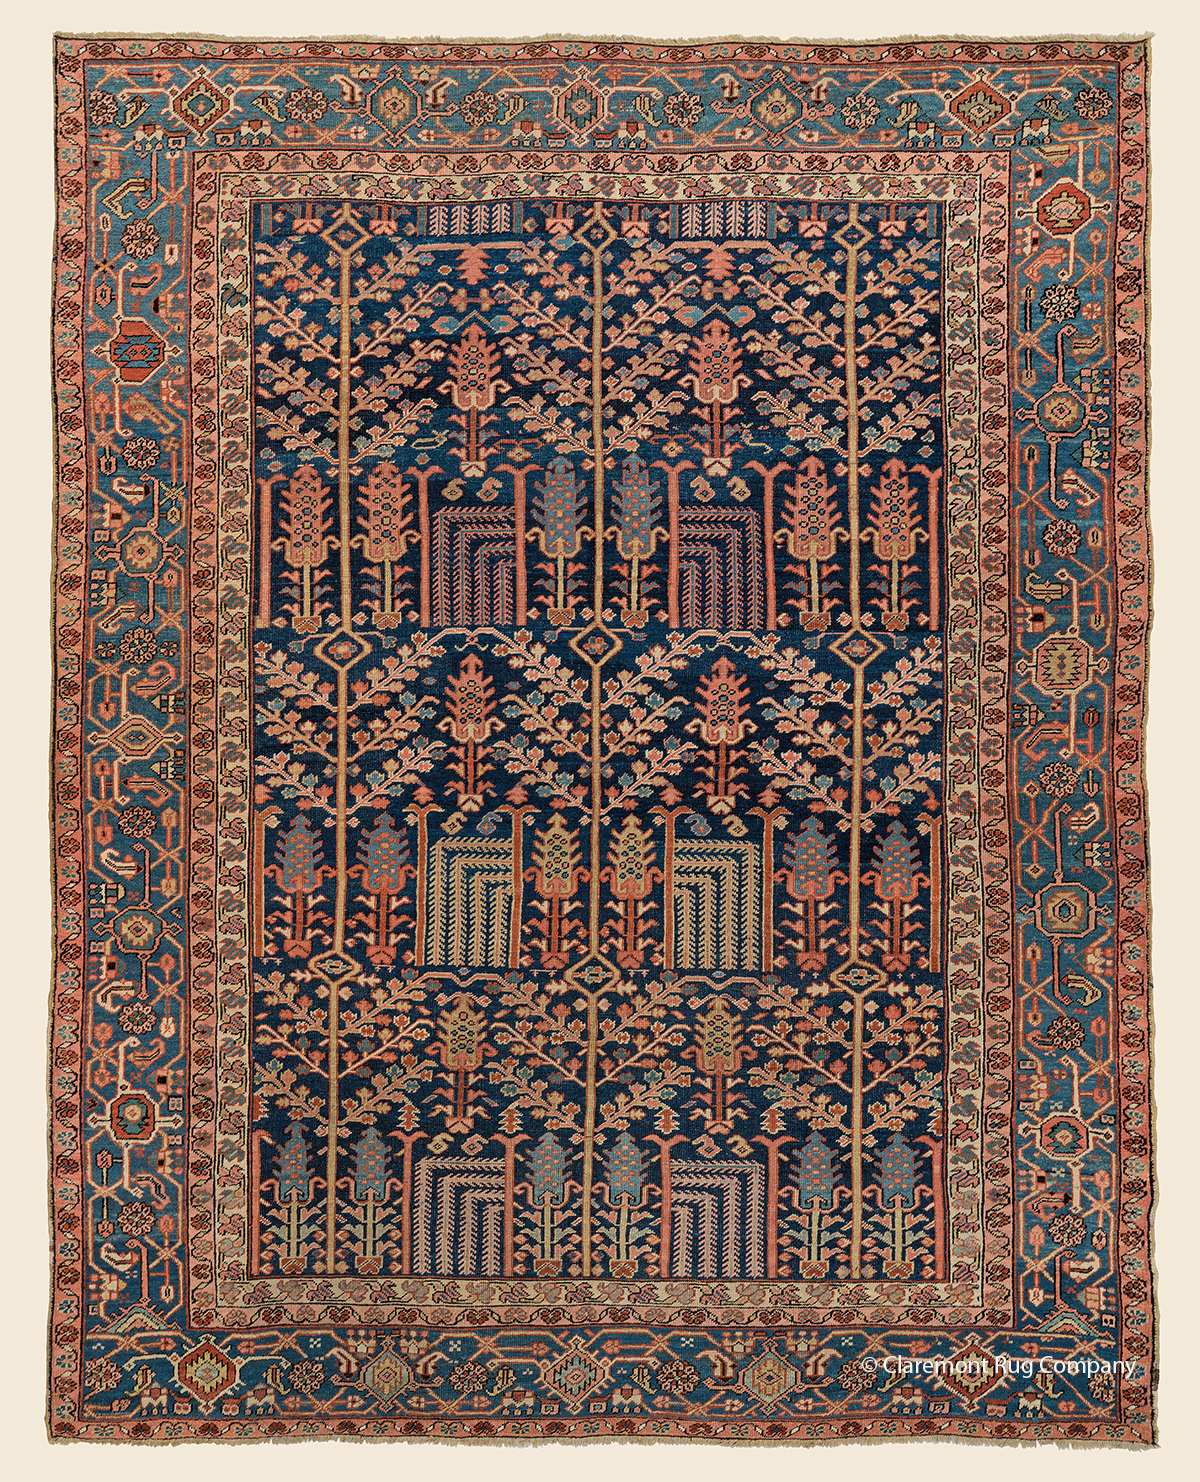 Circa 1900 antique Persian Heriz Garden of Paradise carpet with stylized cypress and willow trees